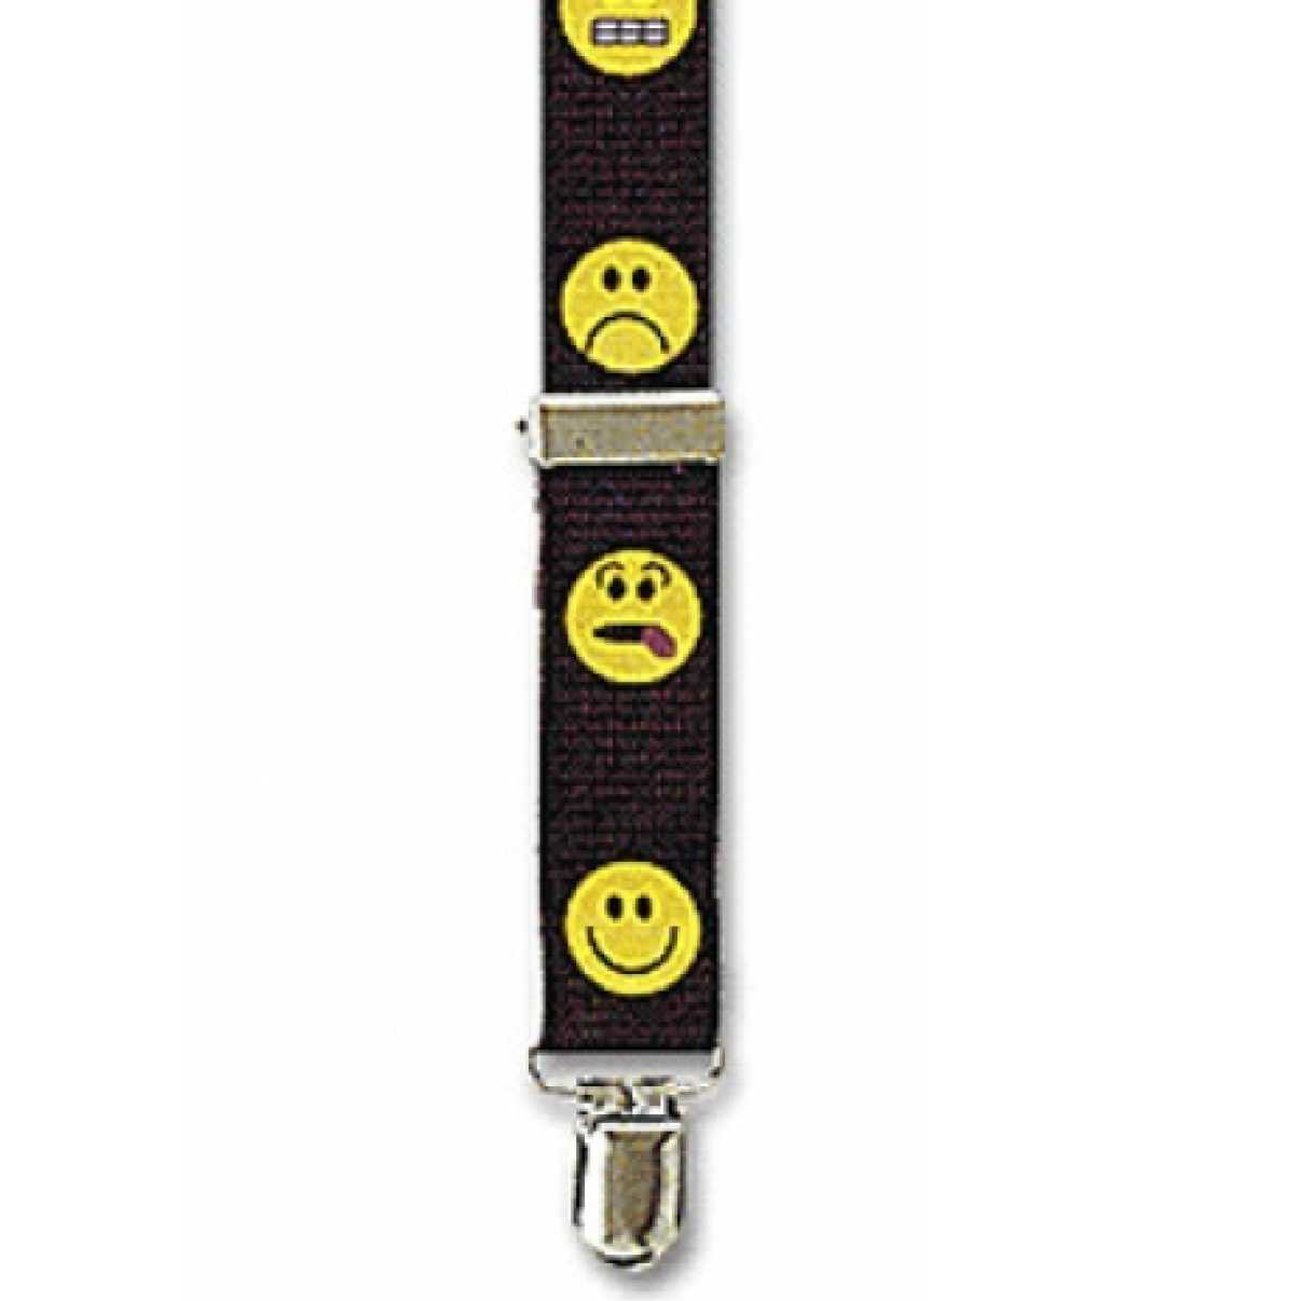 Suspender Factory Smiley Face 1 Inch Clip Suspenders - Assorted Faces UC260N48FACE